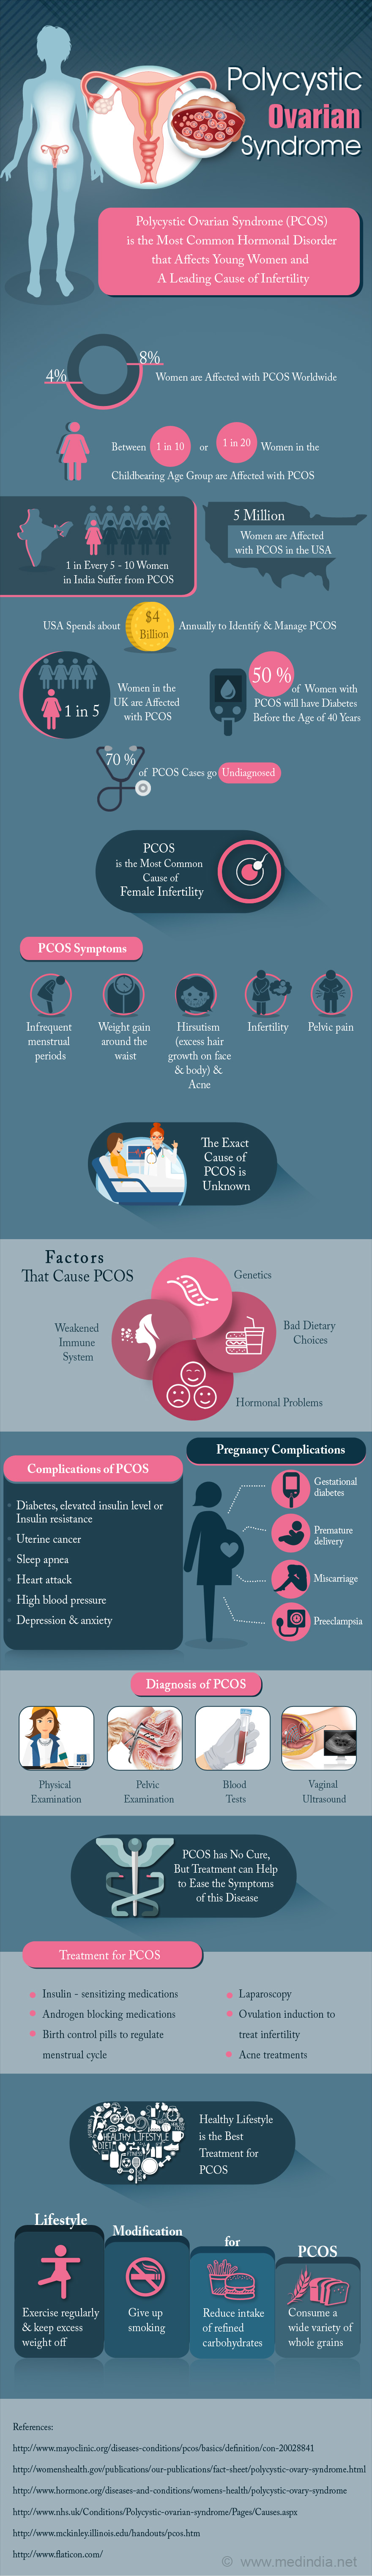 Polycystic Ovarian Syndrome - Infographic